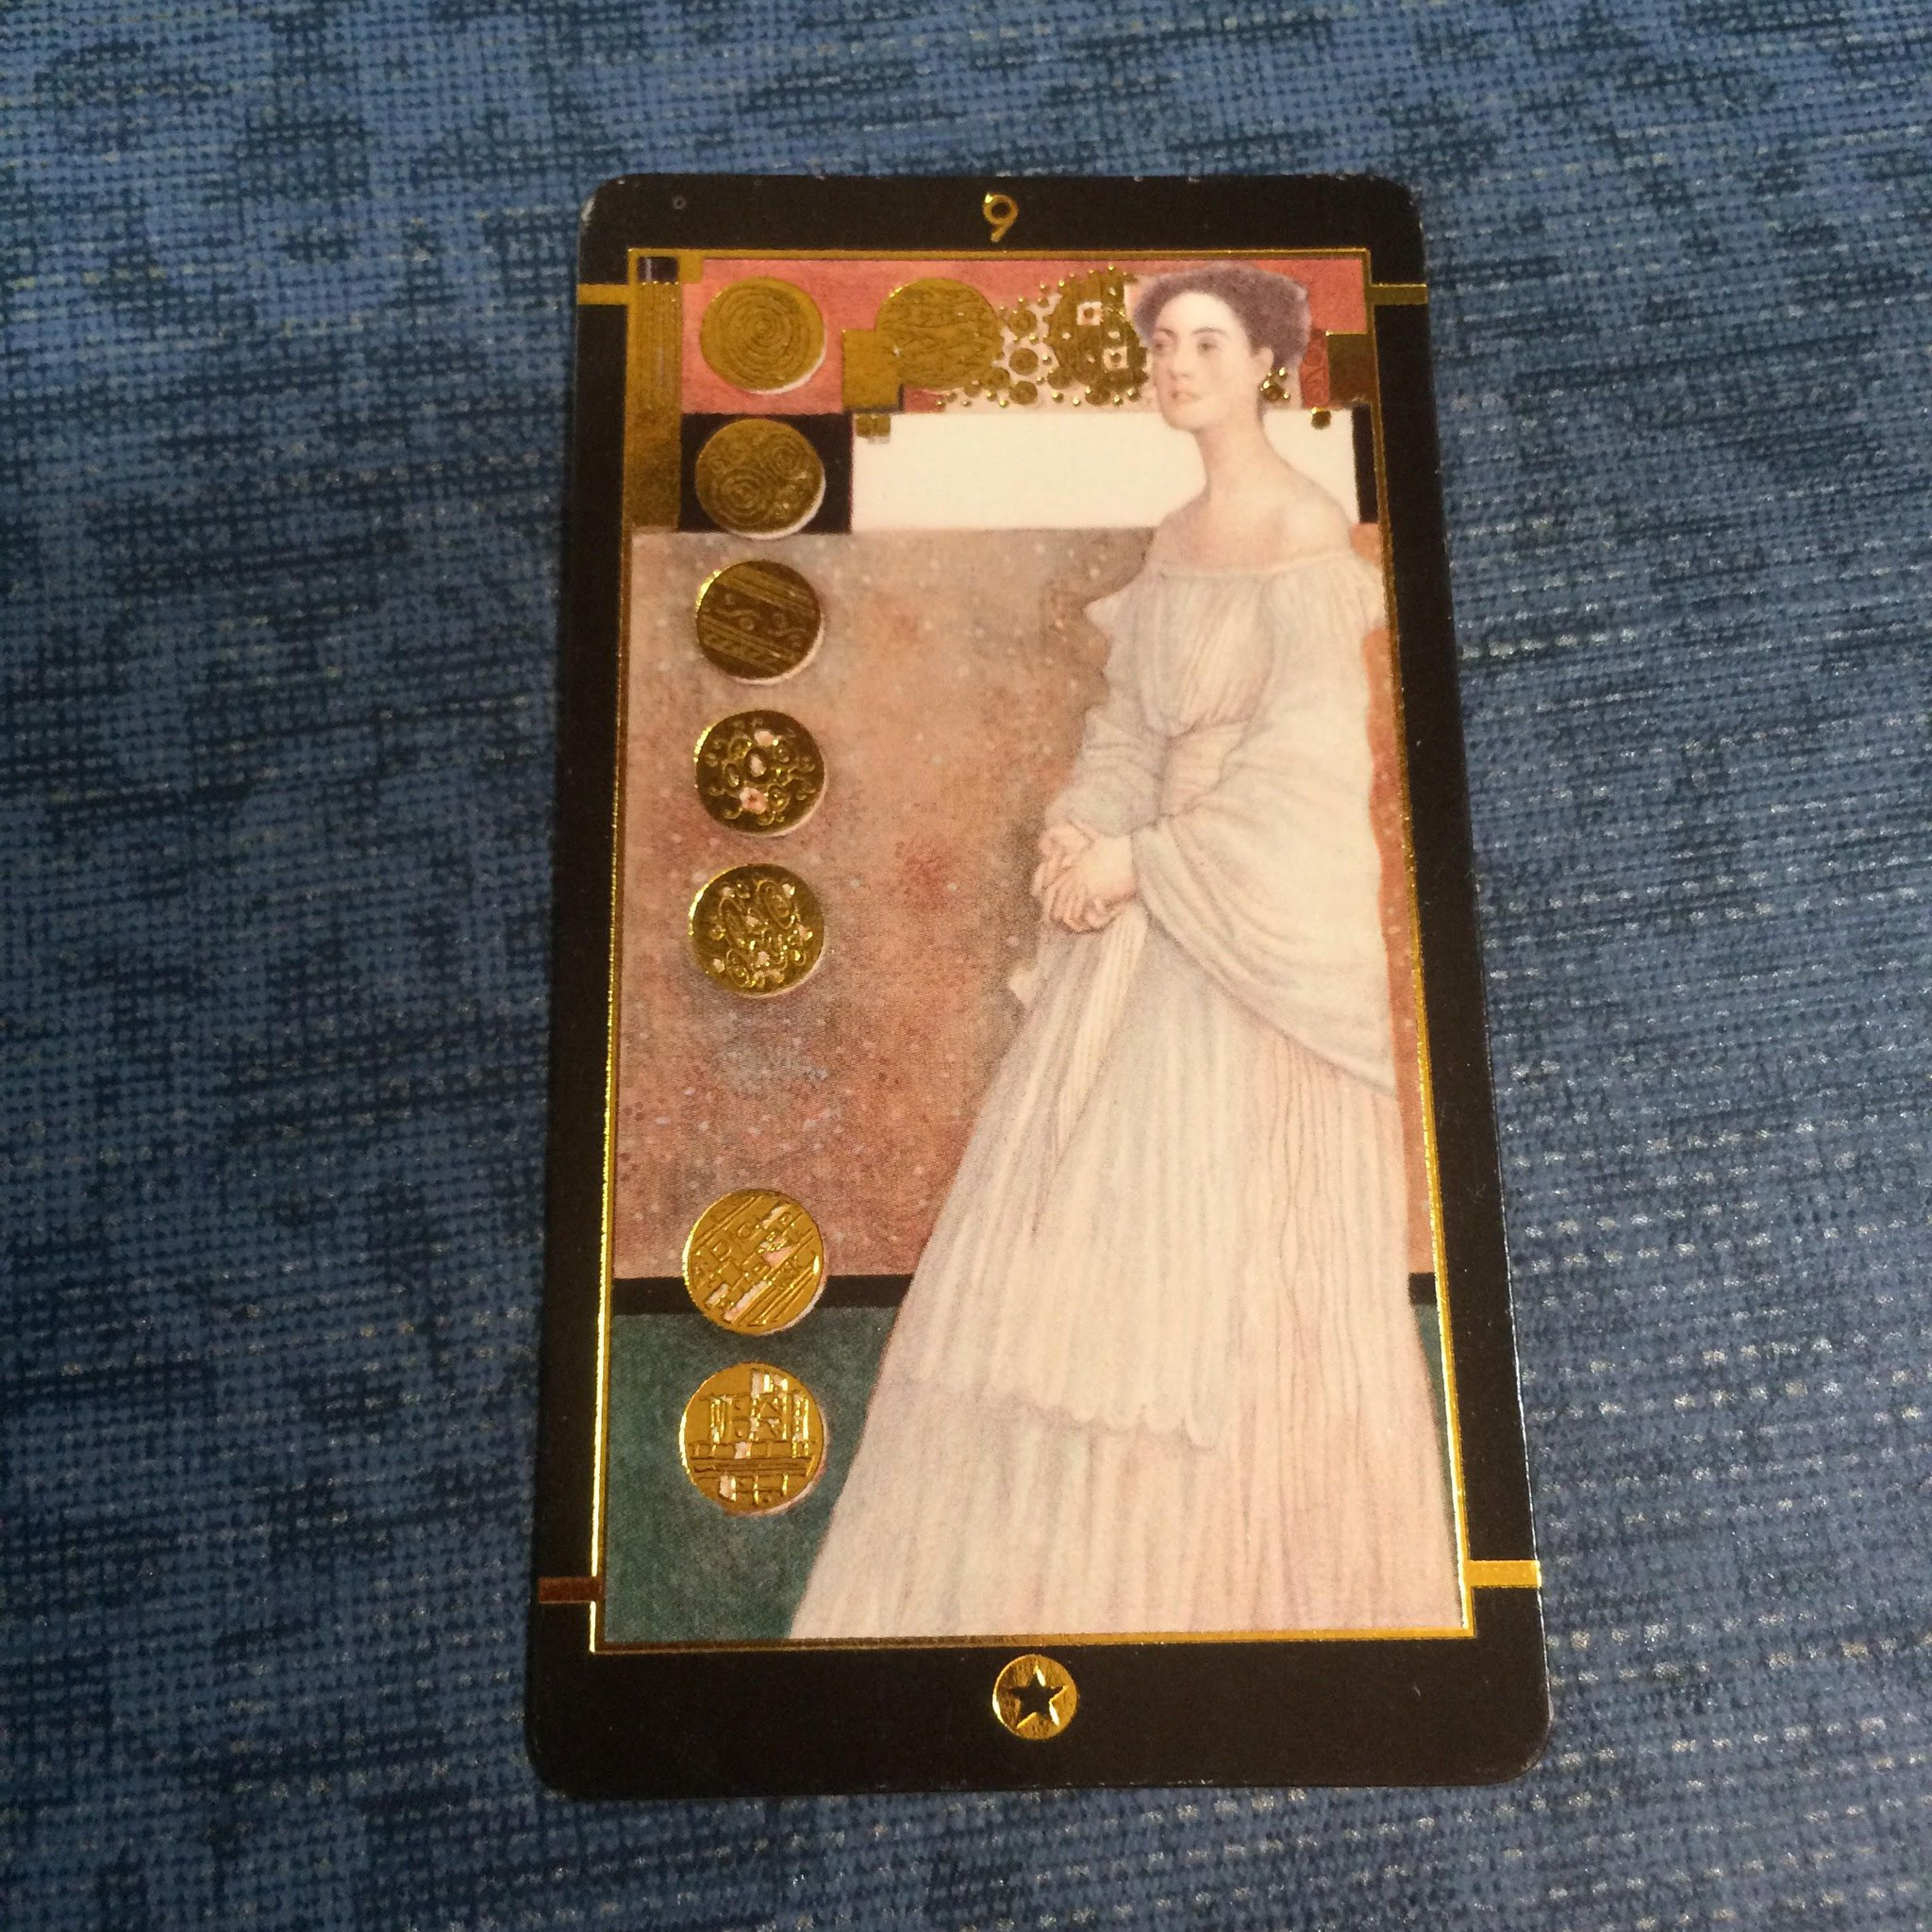 Veroosh Tarot On Twitter Last Moments Of Venus In Aries Decadence Pursue Indulgence Eat A Piece Of Fruit An Apple Grapes And Bring In The Energy Of The Sun In Our Late ) here is the 2019 horoscope spread on thexvid. twitter